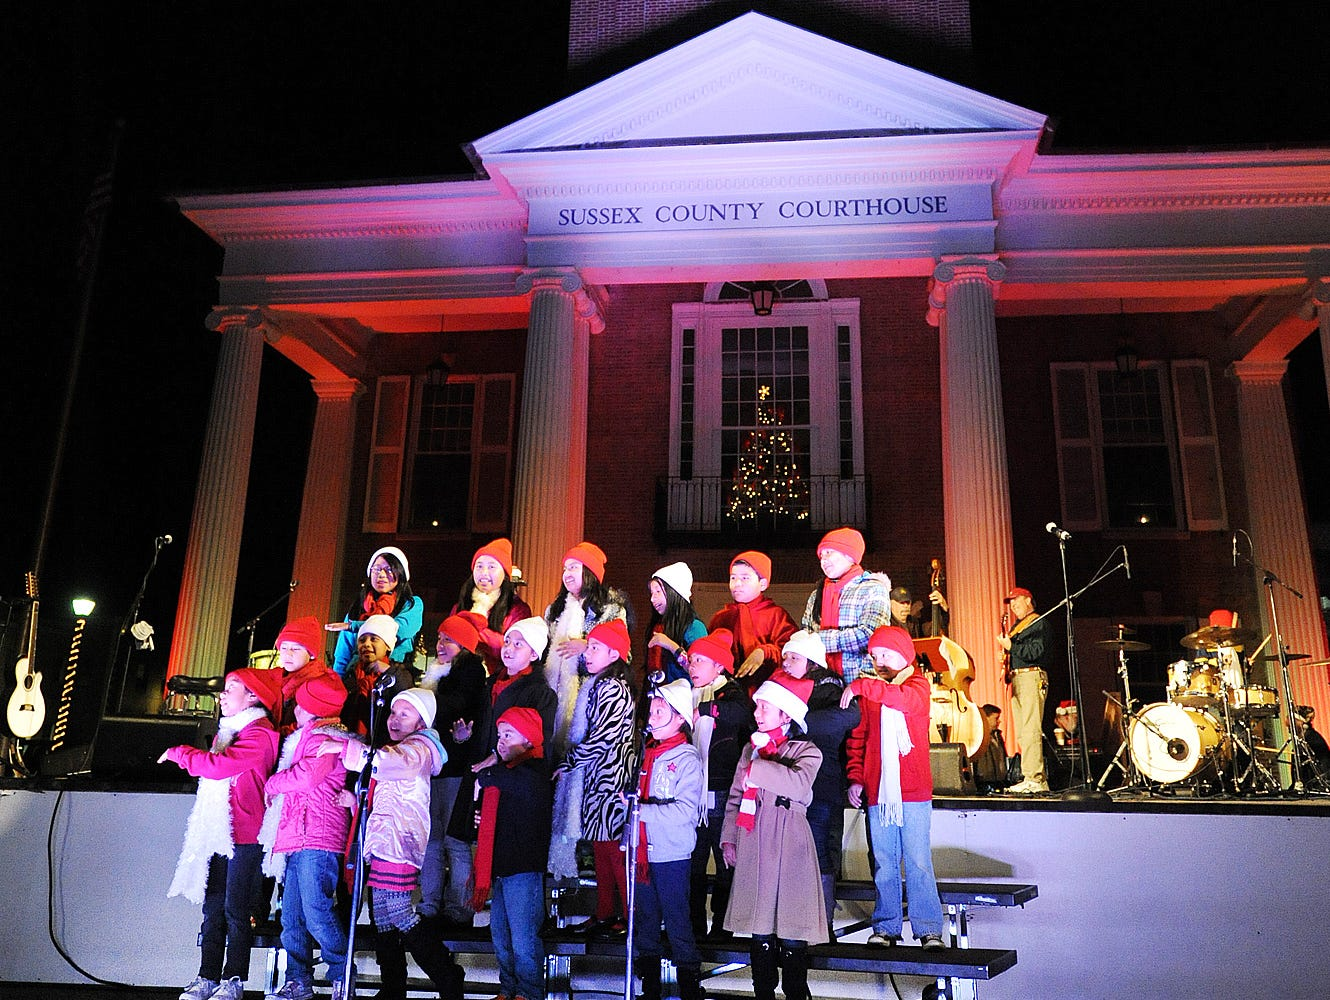 Sing along at Caroling on the Square in Wilmington or on the Circlein Georgetown, seen here. www.facebook.com/events/151533175469787